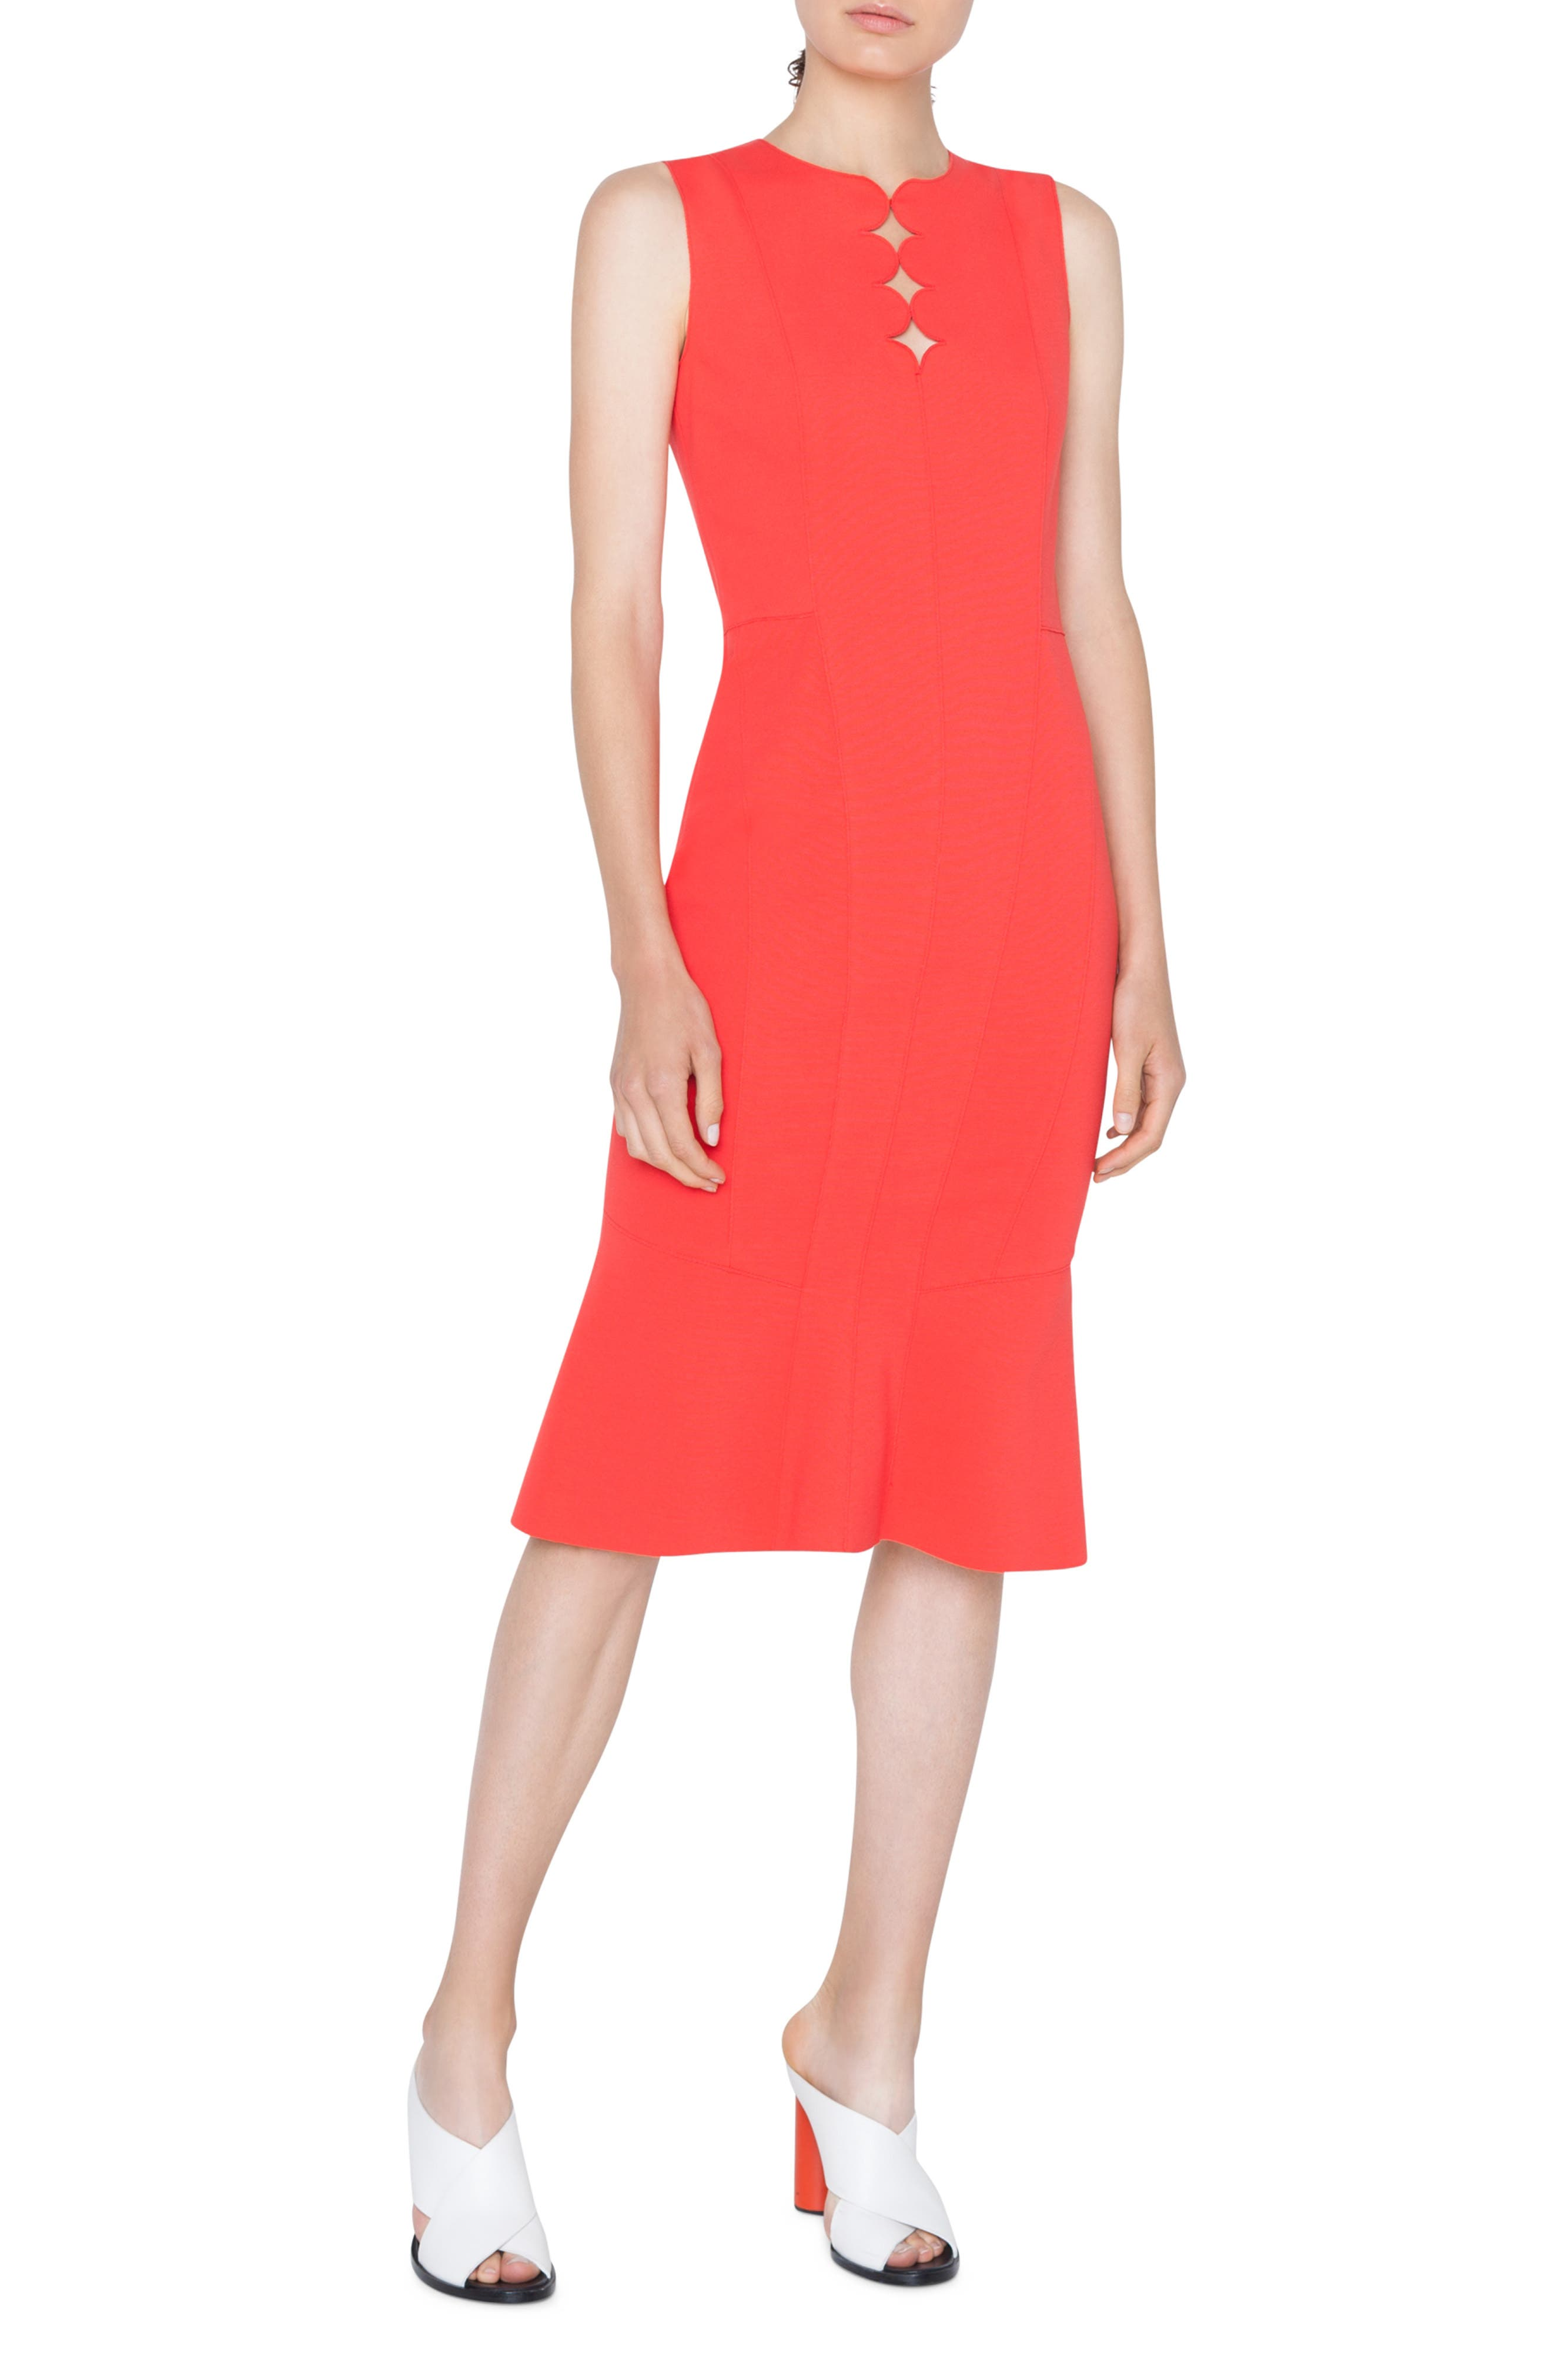 Sleeveless Jersey Dress With Memphis Scallop Detail in Rosso Forte